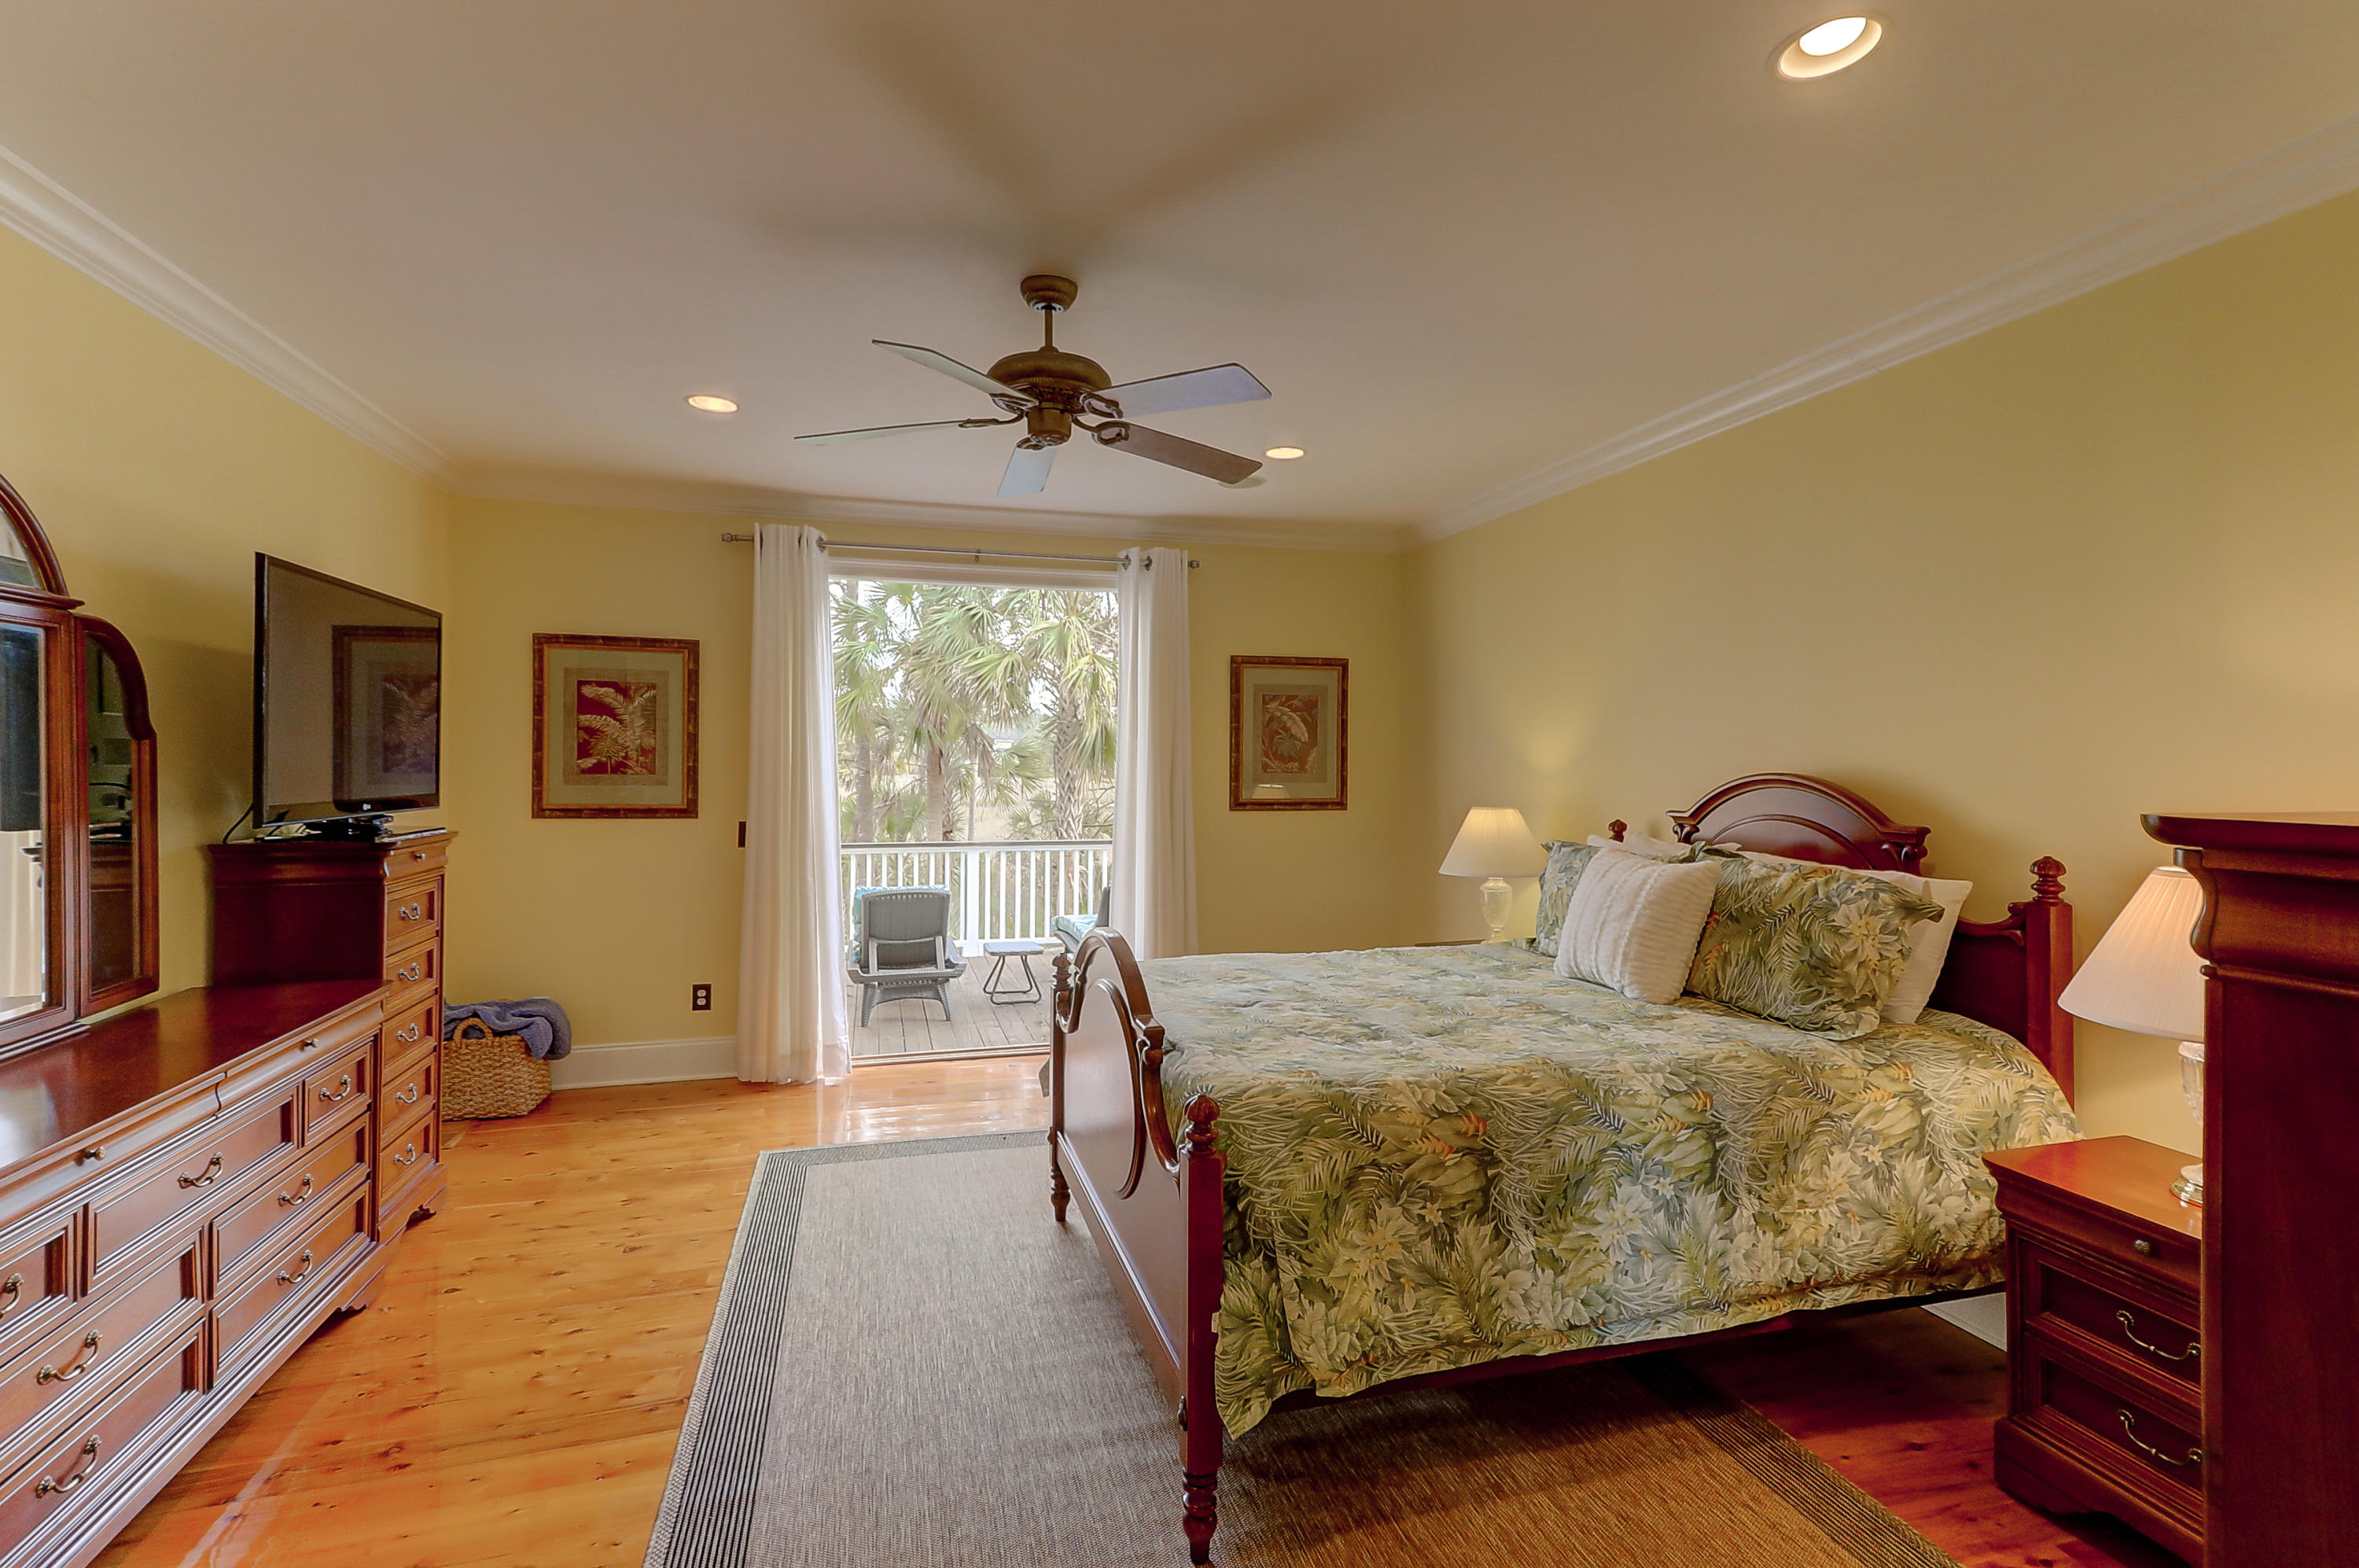 Dunes West Homes For Sale - 1764 Greenspoint, Mount Pleasant, SC - 24